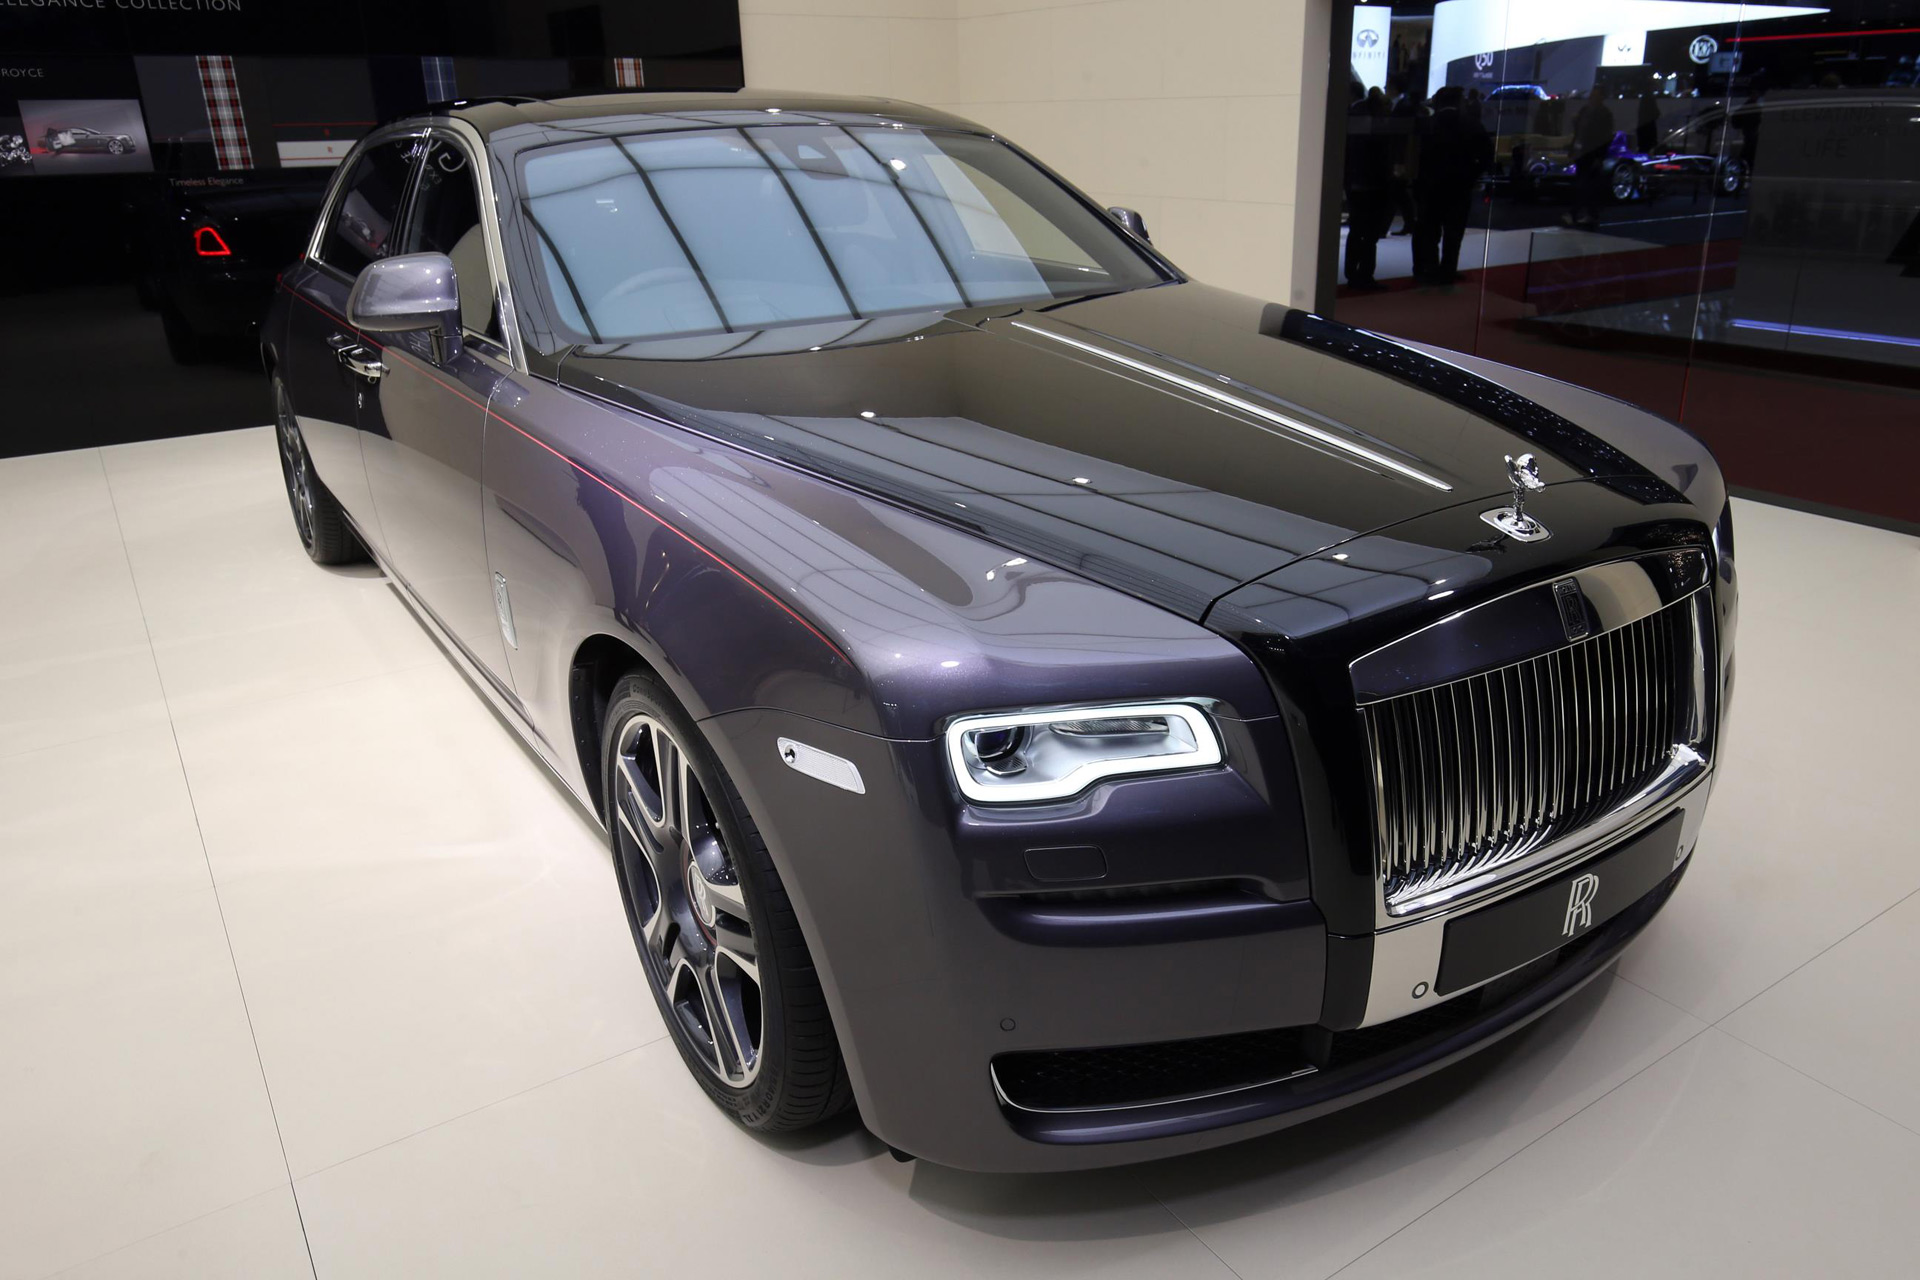 2019 Rolls Royce Ghost >> Rolls-Royce destroyed 1,000 diamonds to paint this Ghost | Autozaurus